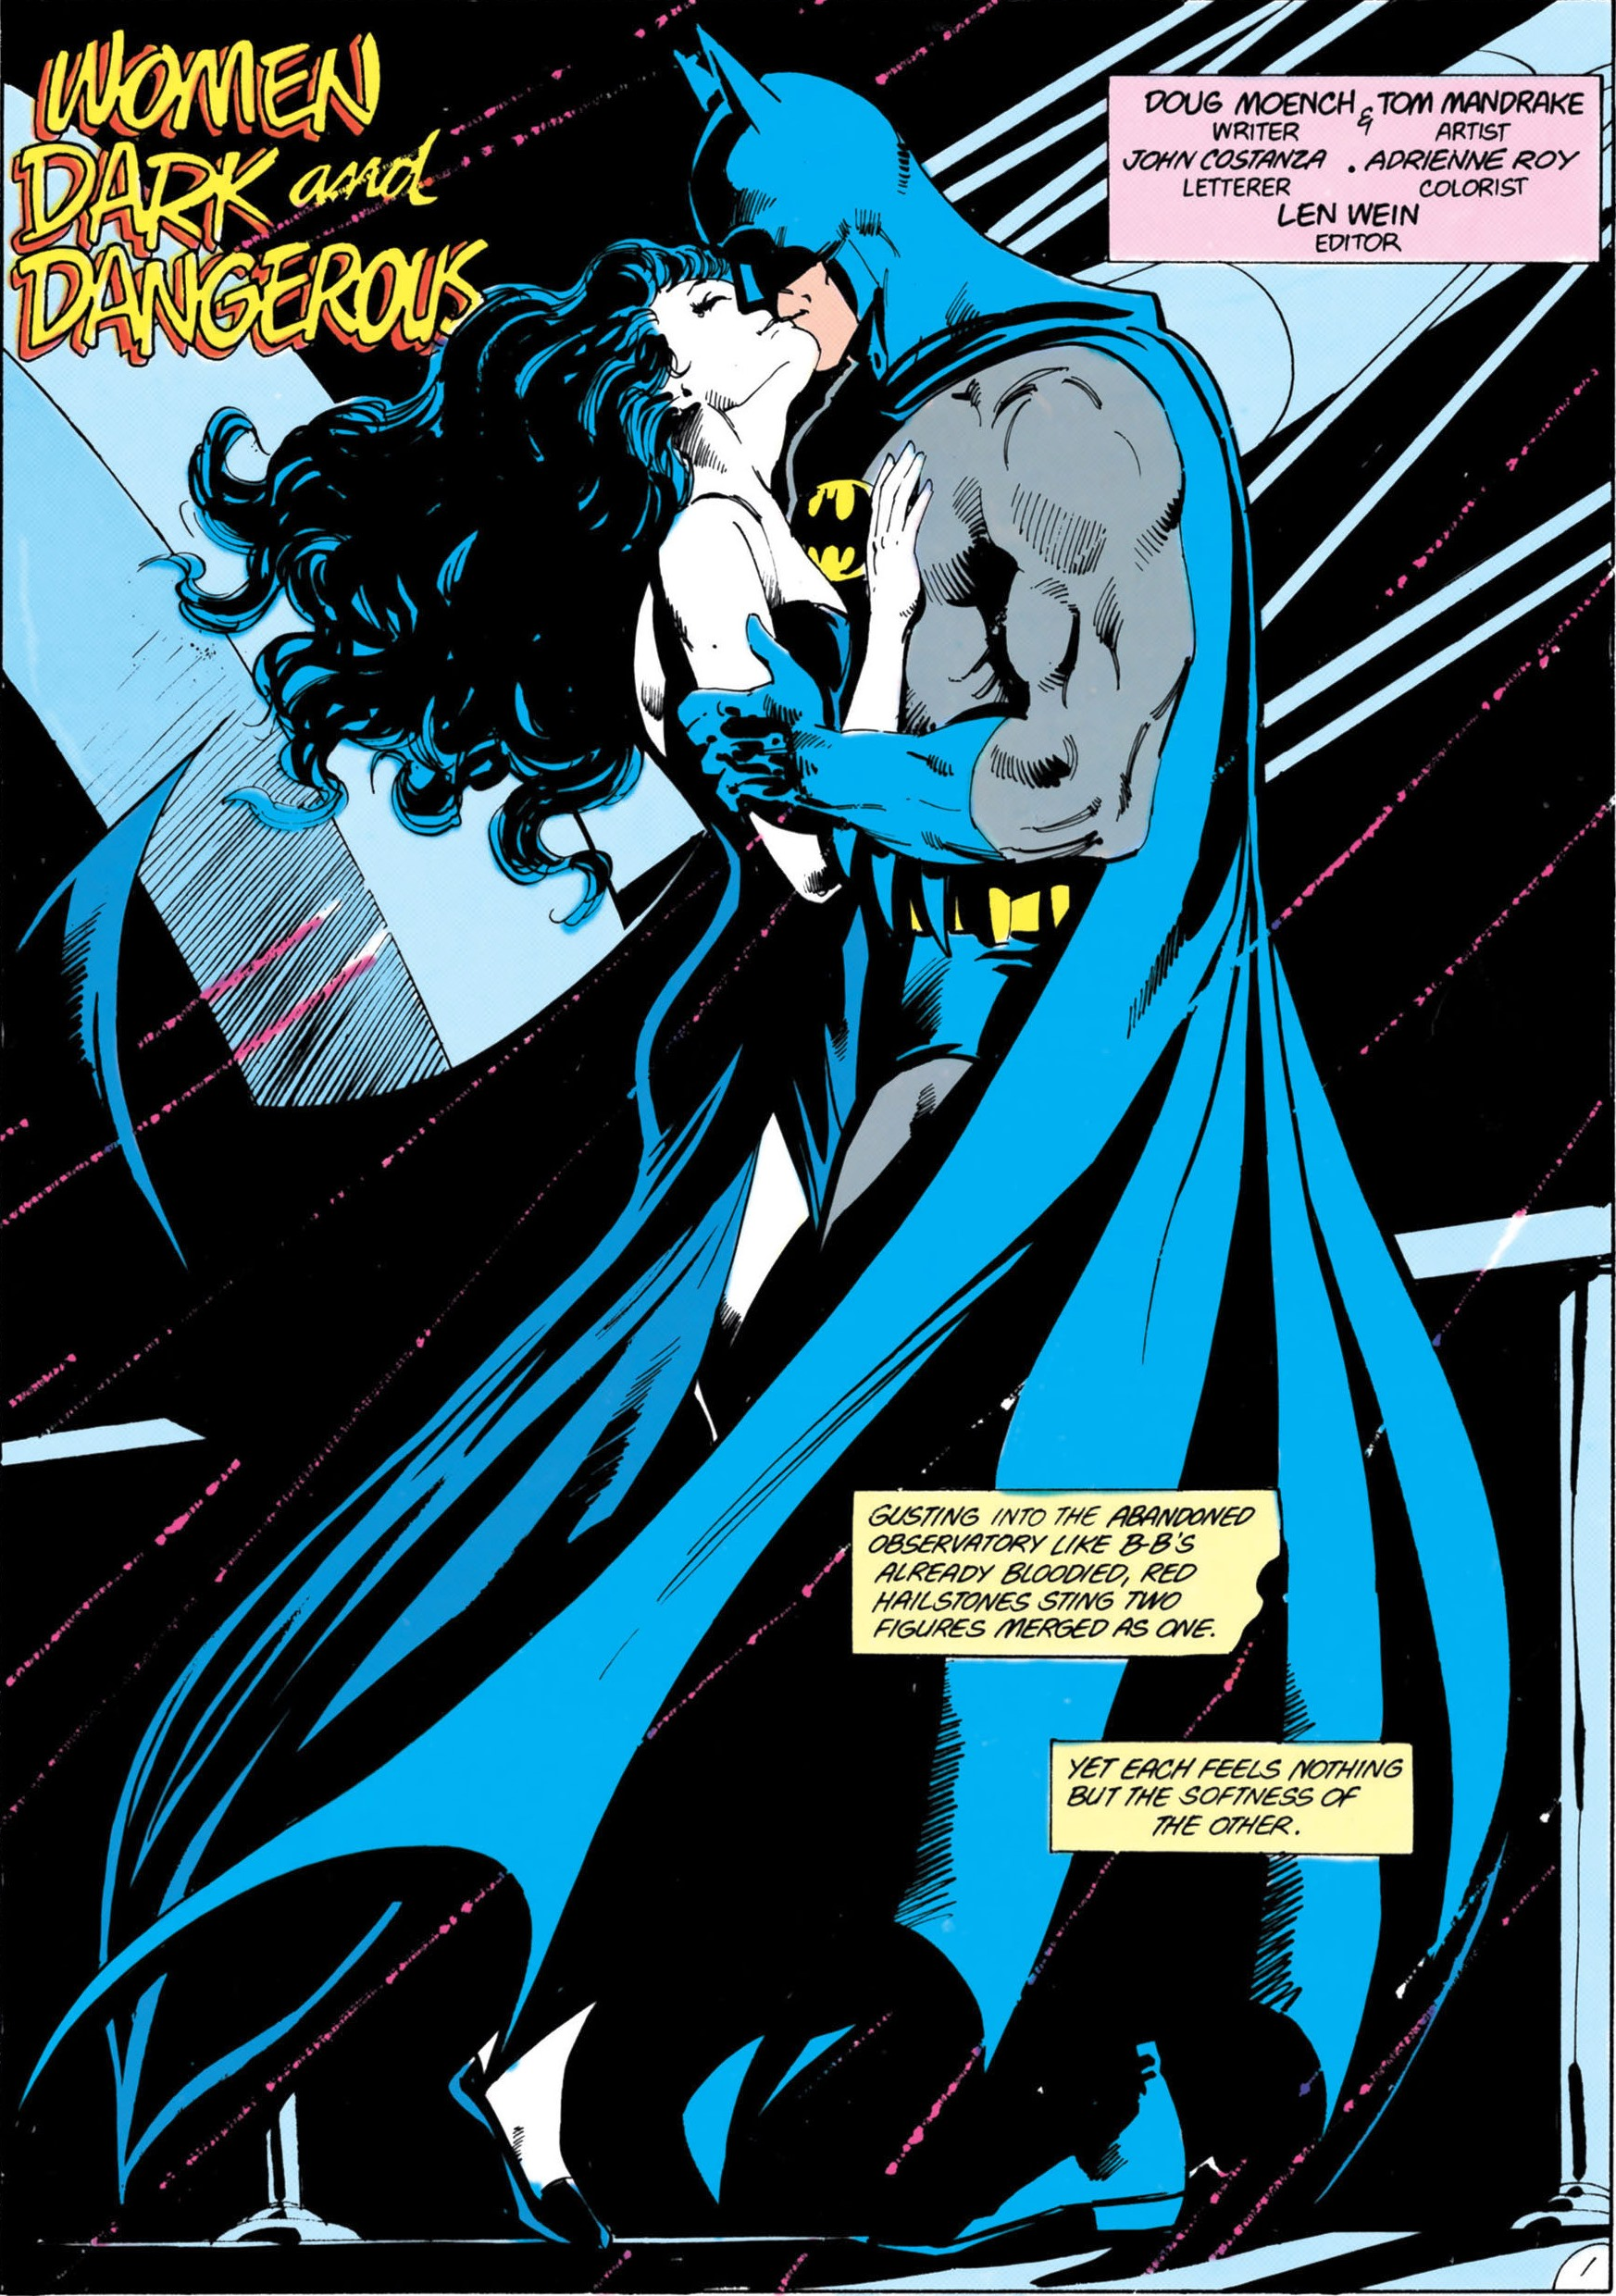 Sex acts between catwoman and superman